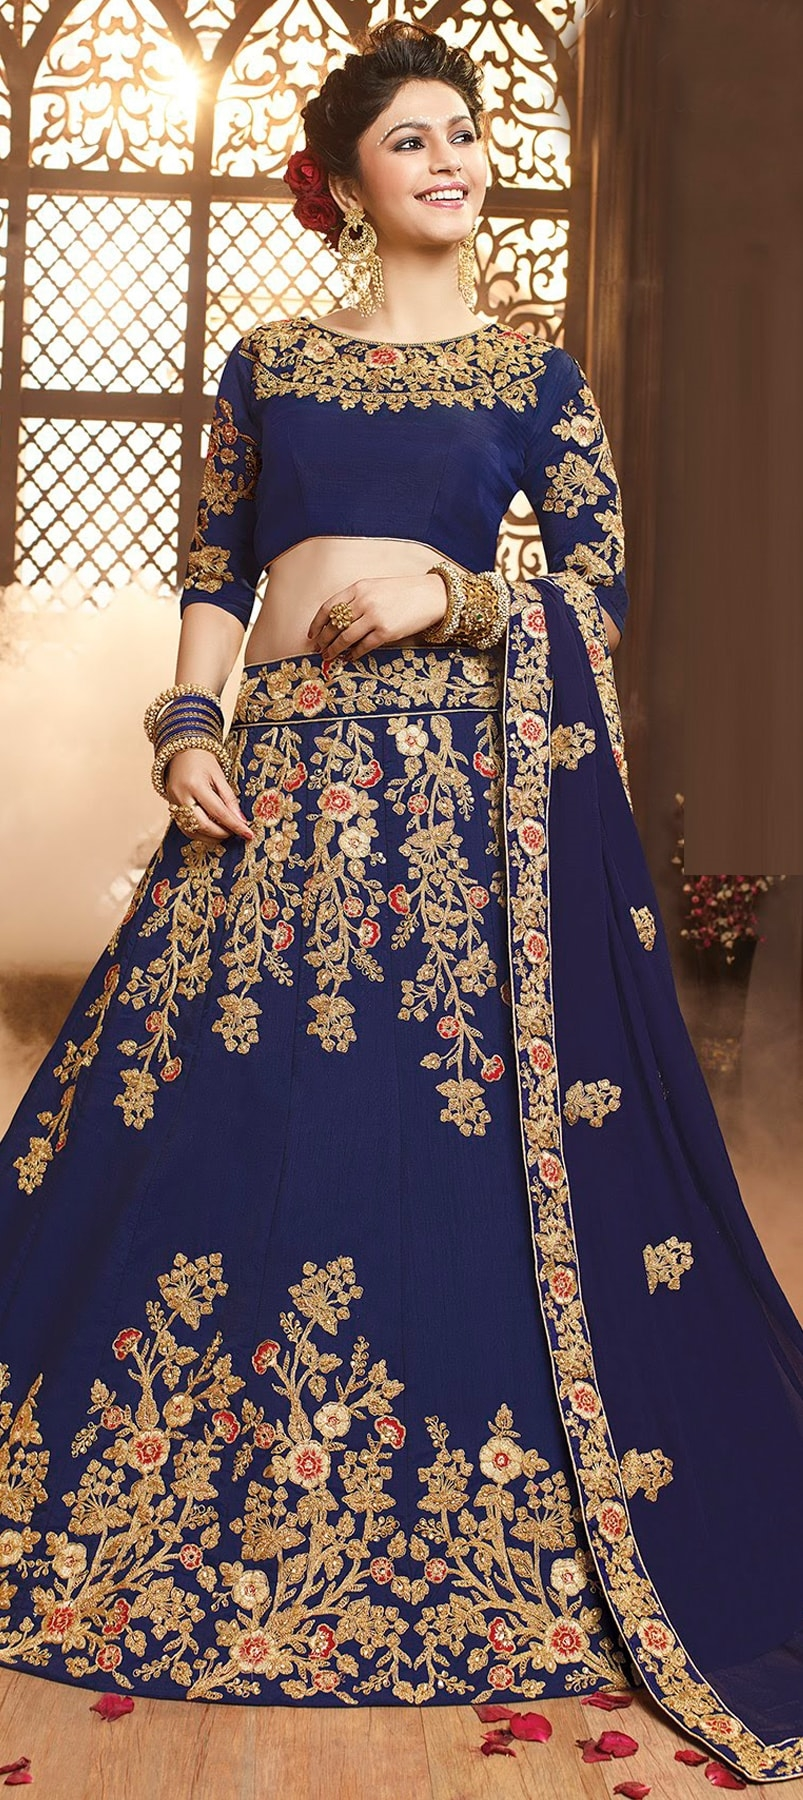 HOW TO PERSONALIZE YOUR INDIAN LEHENGAS?